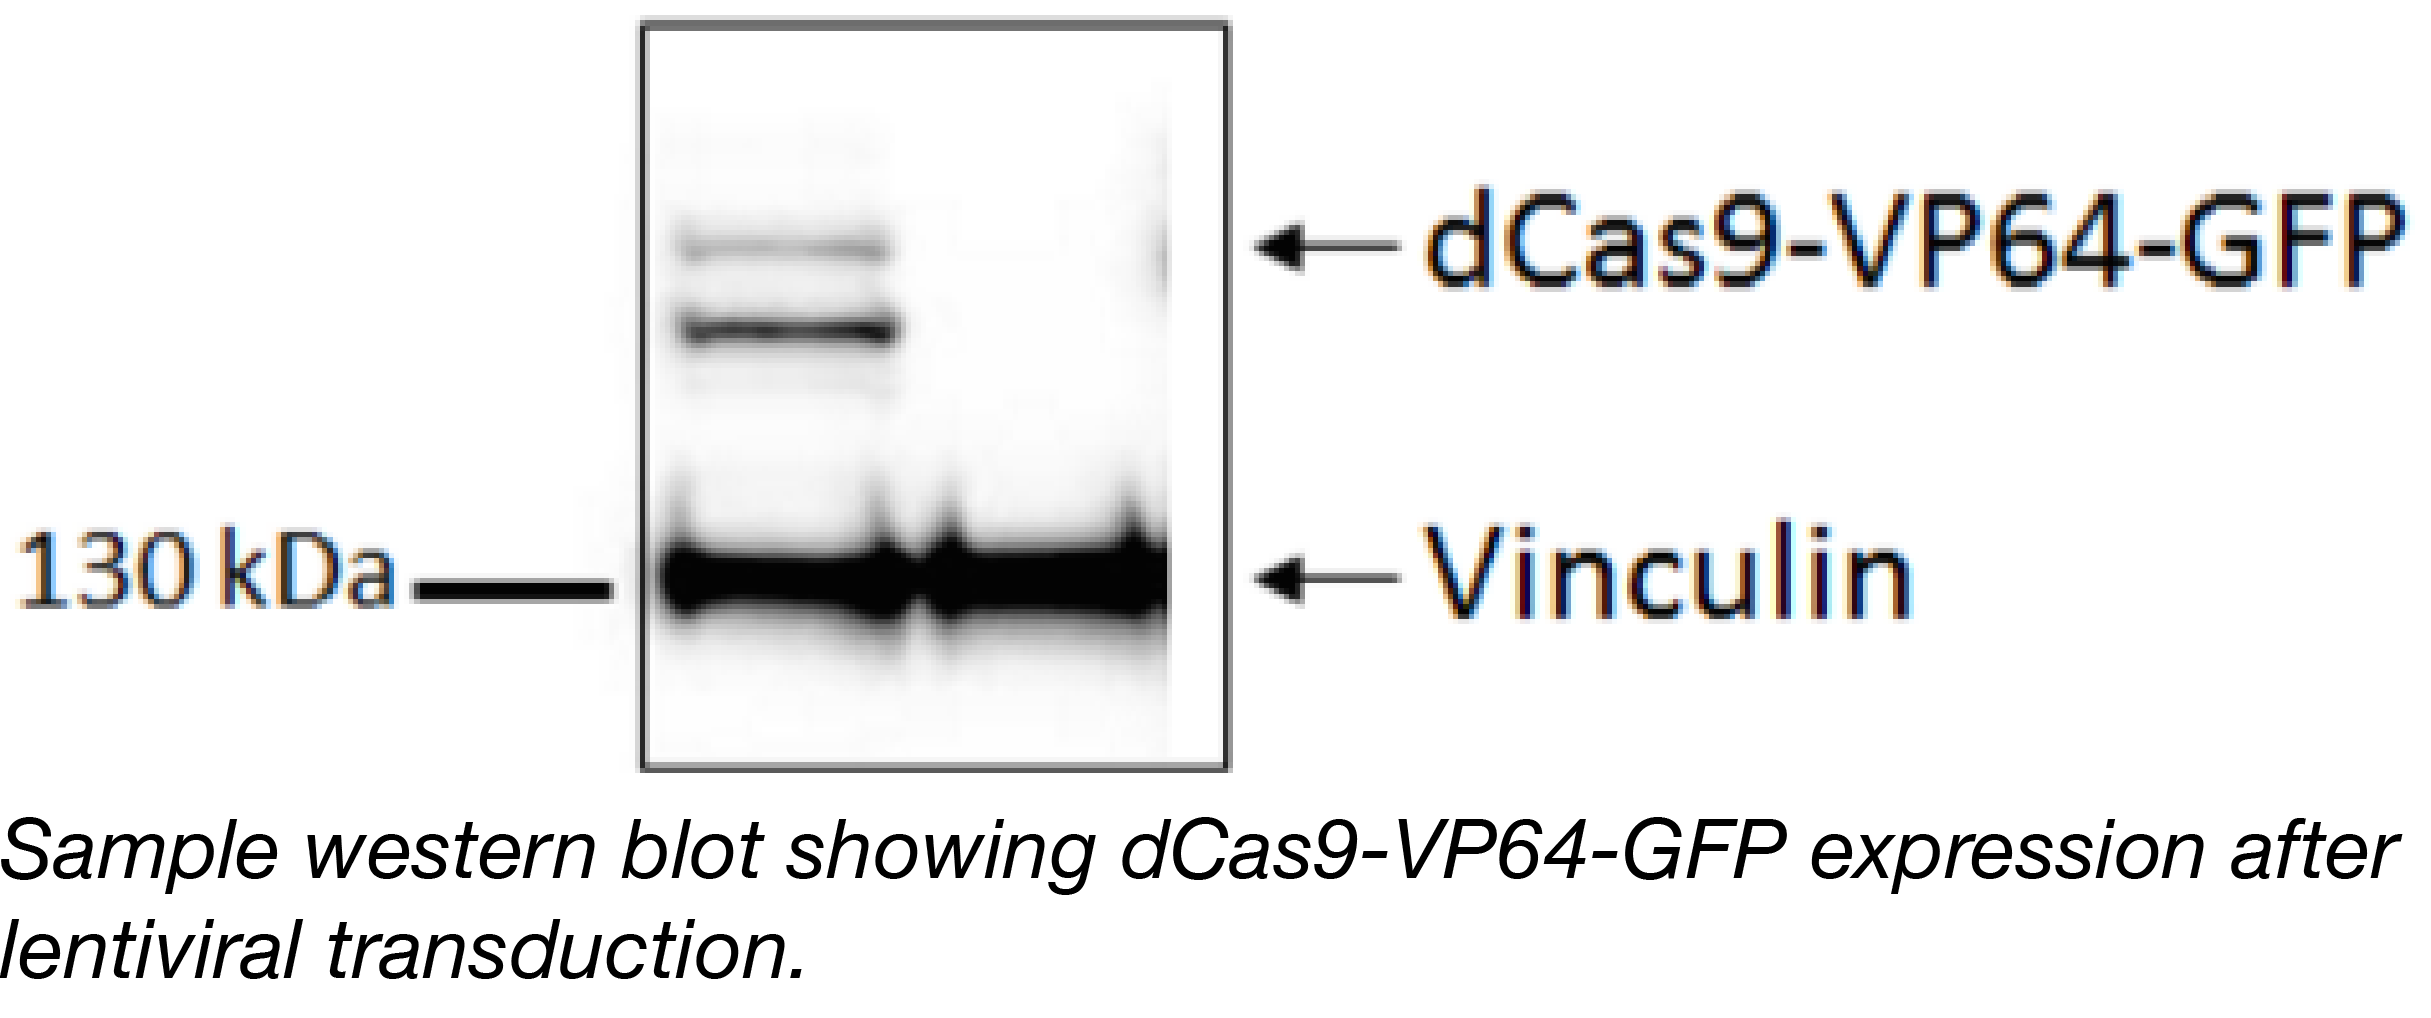 Cas9-VP64-GFP Western Blot-01.png